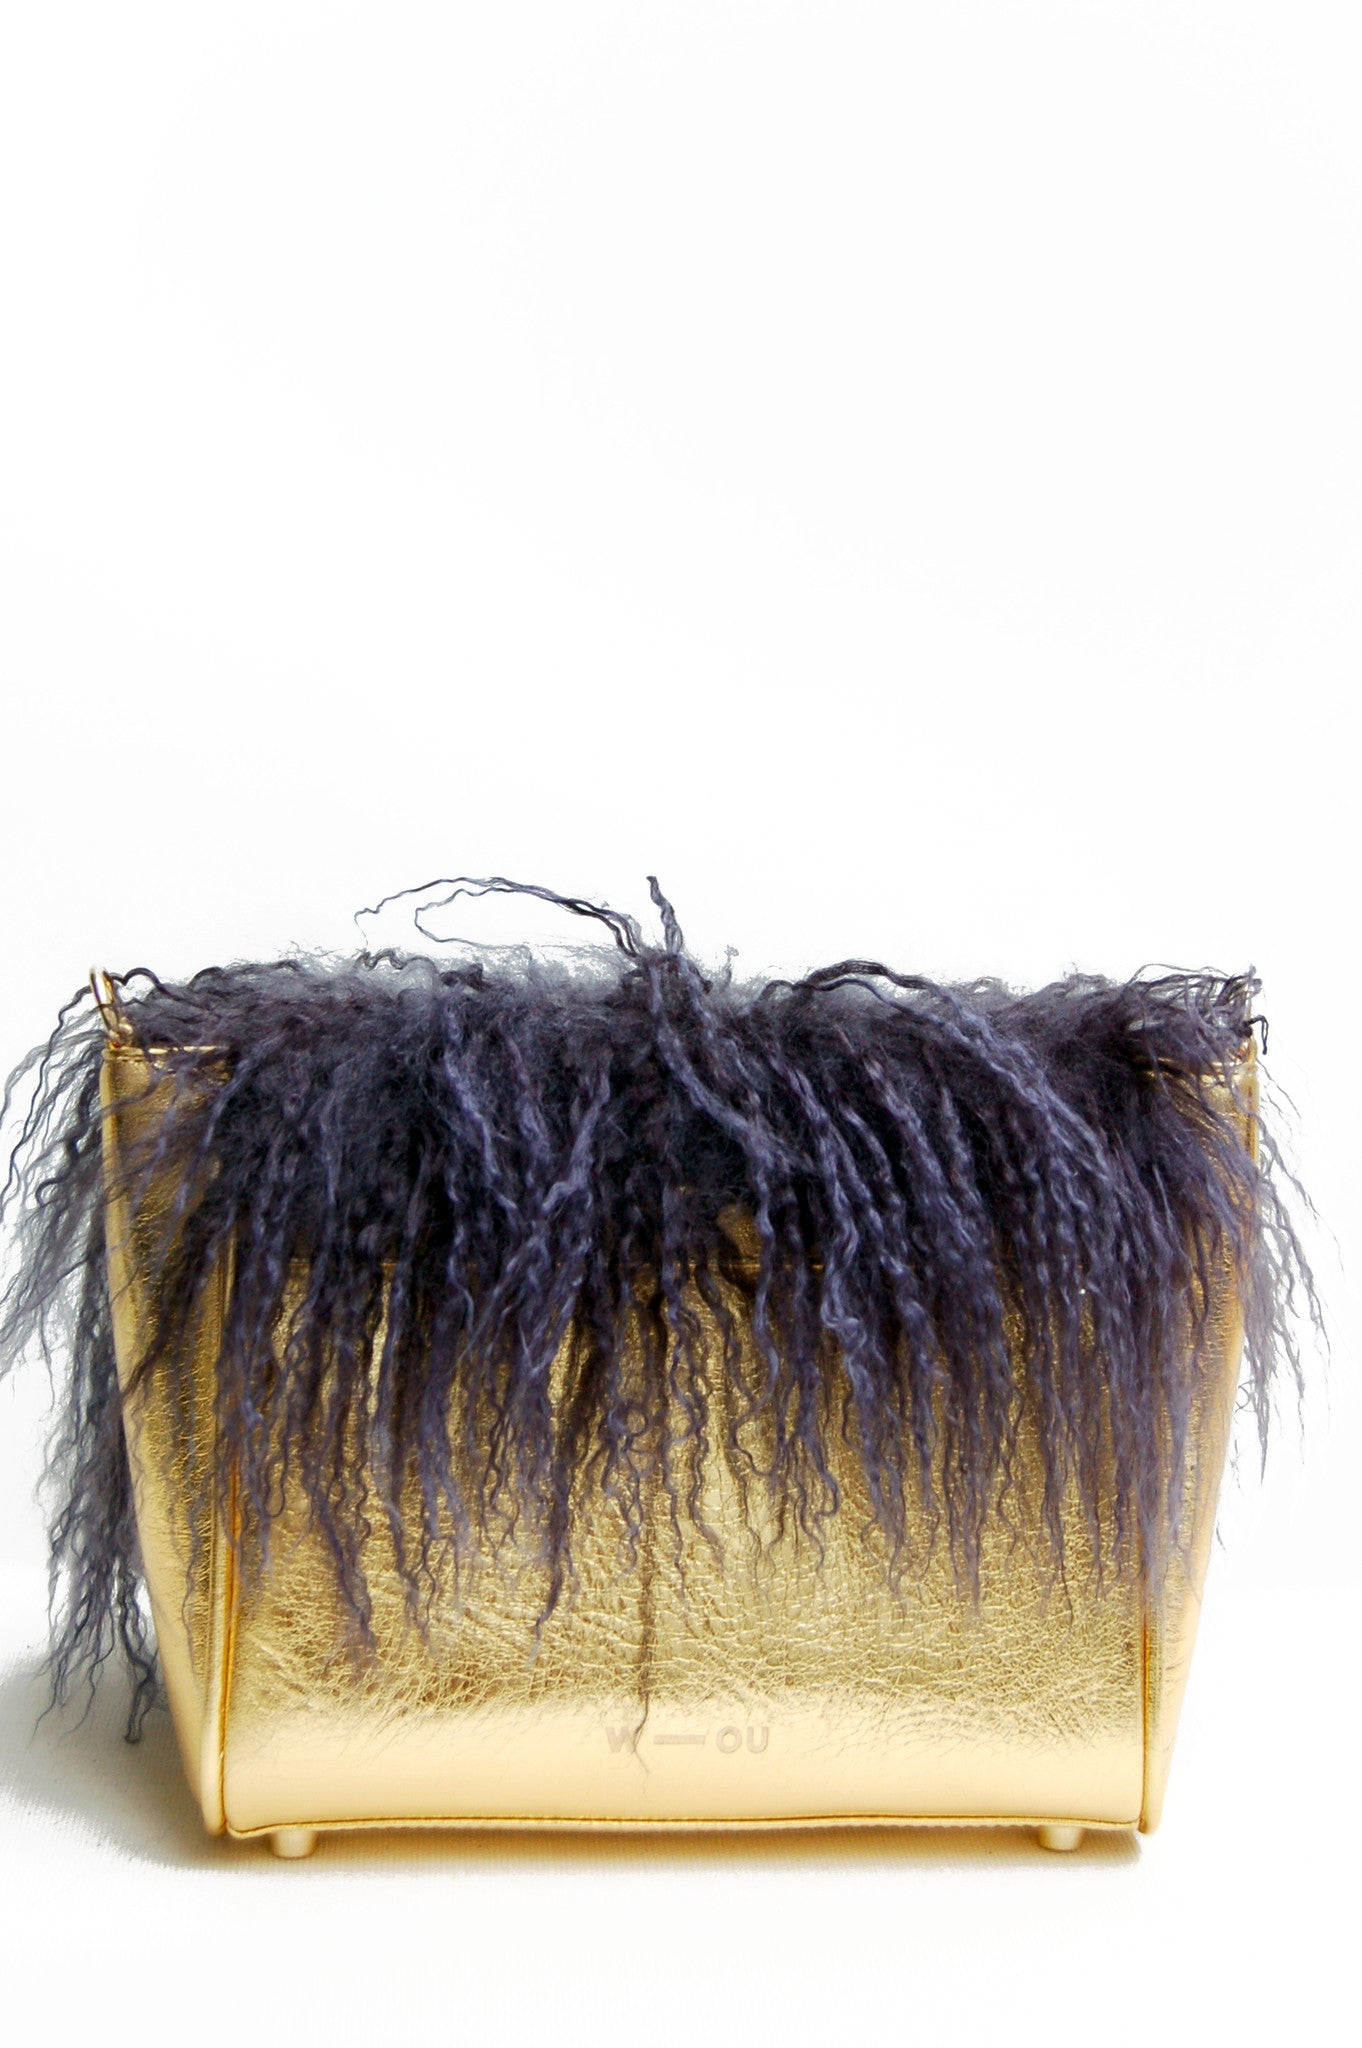 Wendee Ou: Sienna flapover handbag gold & purple fur | Bags > Handbags,Bags,Bags > Shoulder Bags -  Hiphunters Shop